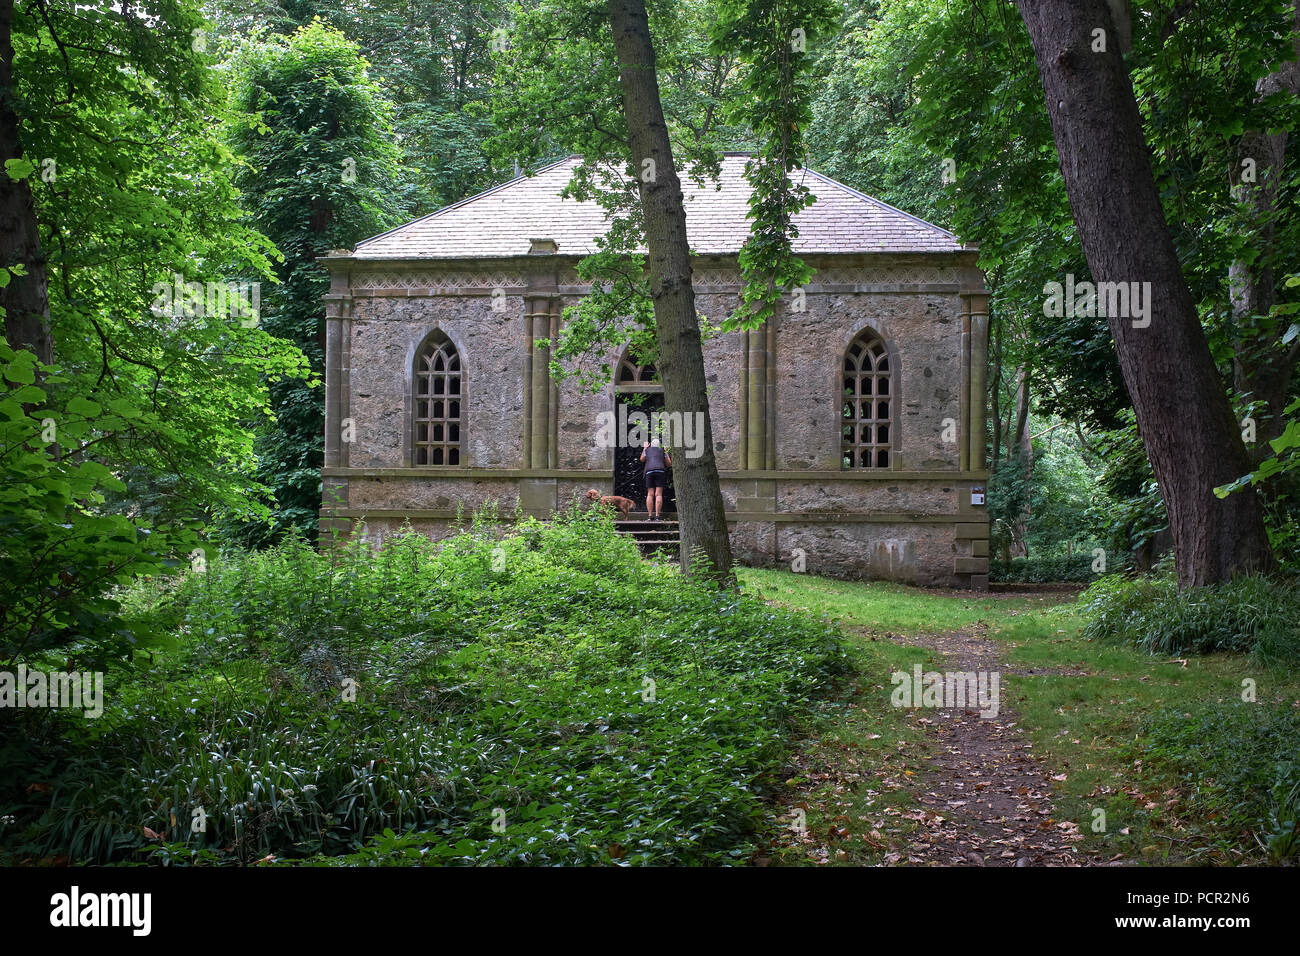 Front elevation of the Mausoleum erected by James, 2nd Earl Fife in 1793. at Duff House - Stock Image